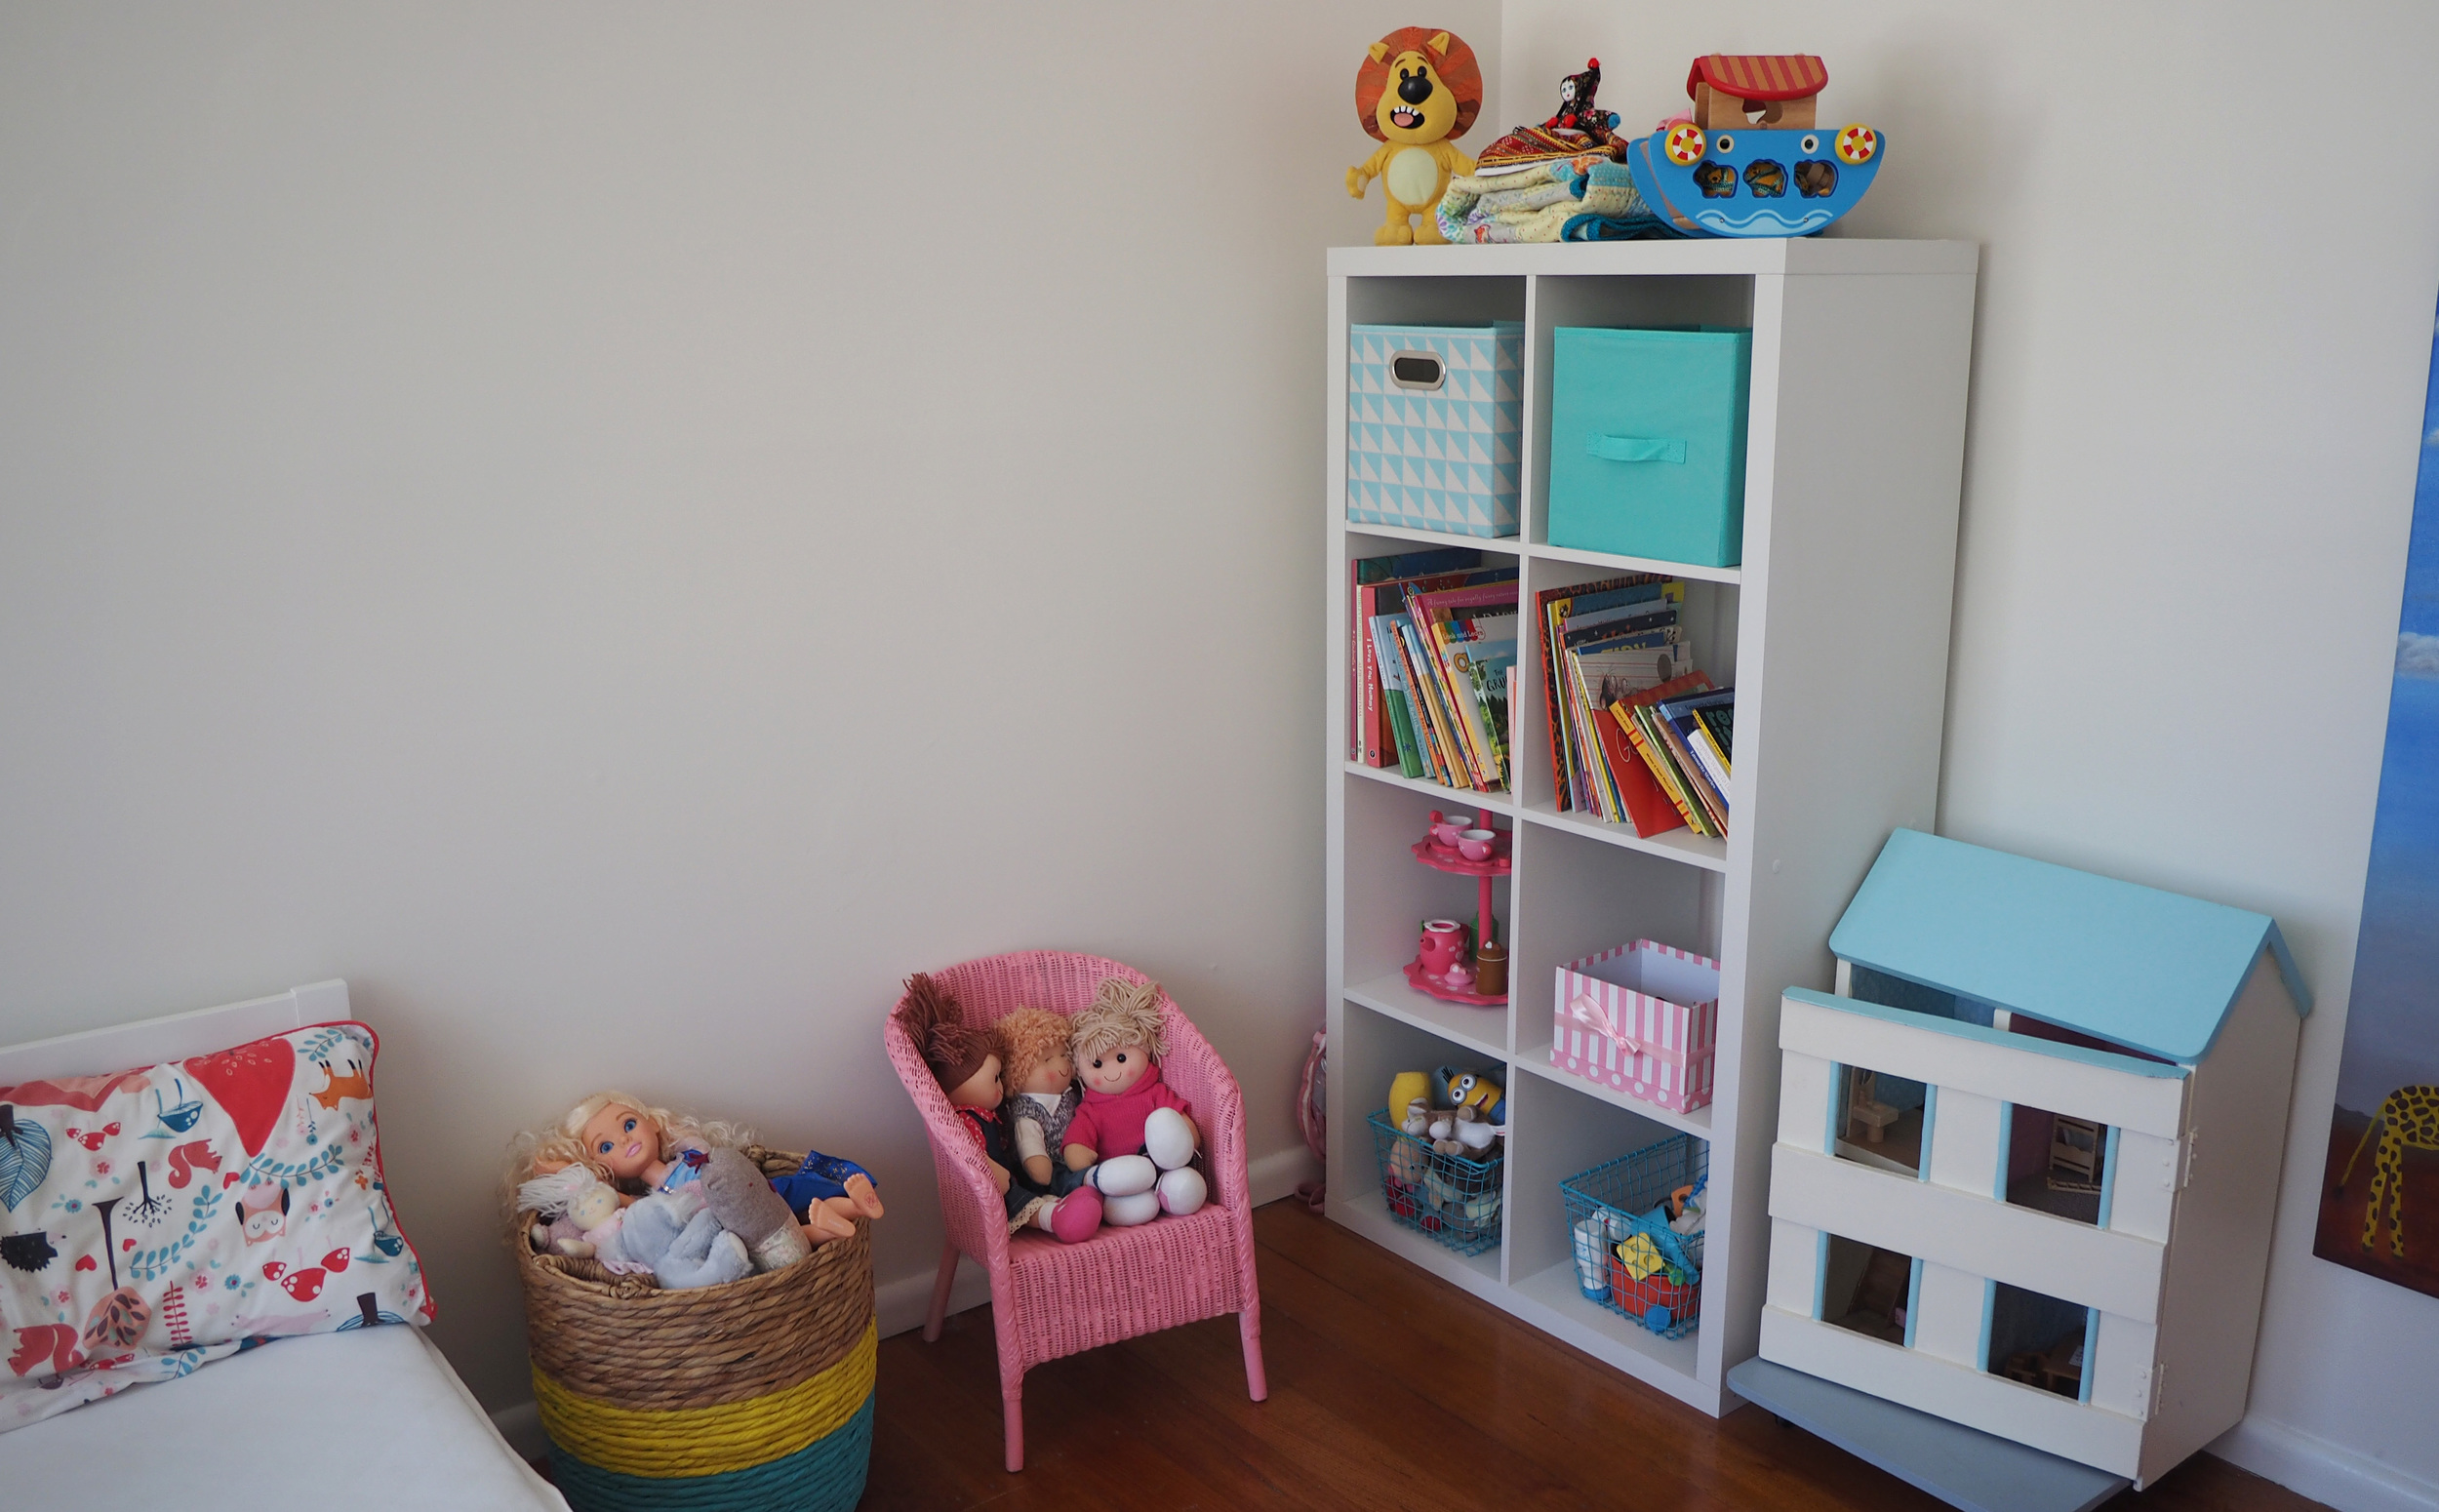 Trying out lots of different furniture arrangements and storage options is the best way to reach the perfect set-up - if at first you don't succeed, try try again!